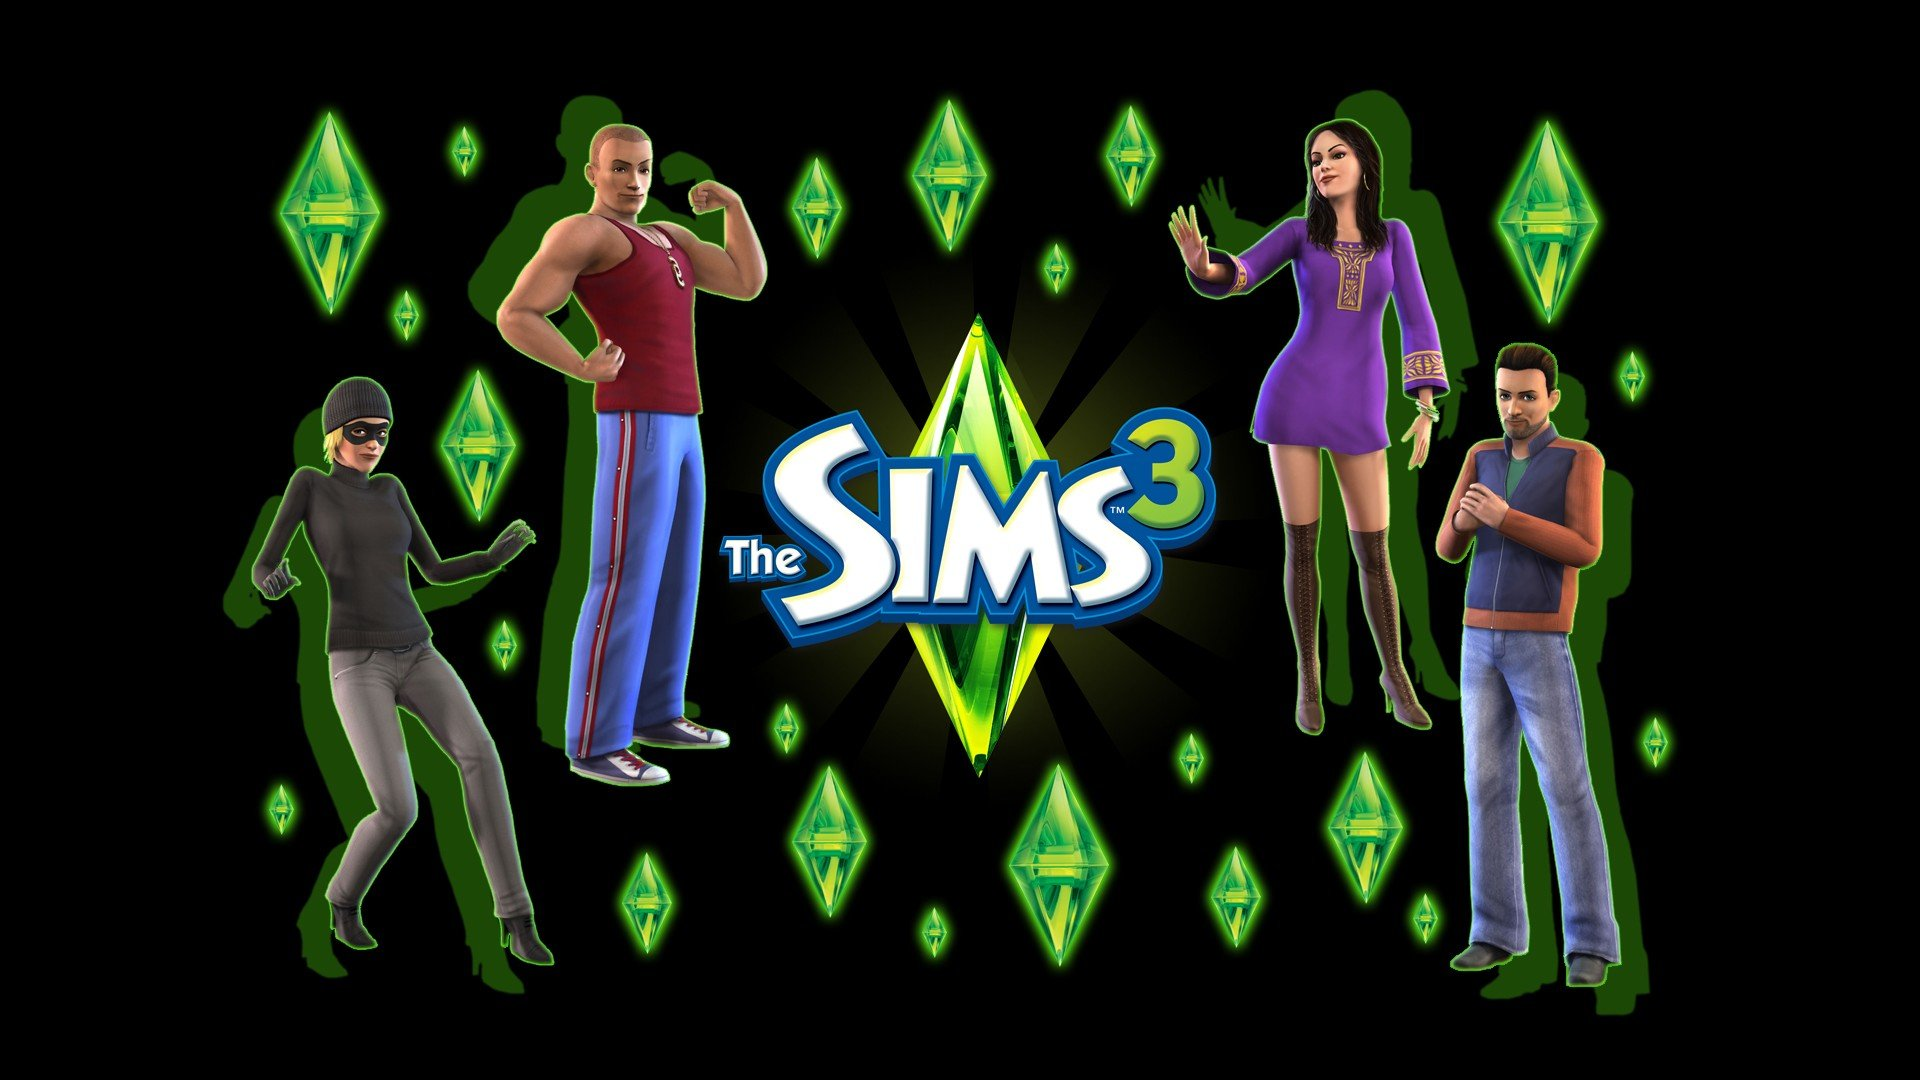 Sims 3 wallpapers Sims 3 background 1920x1080